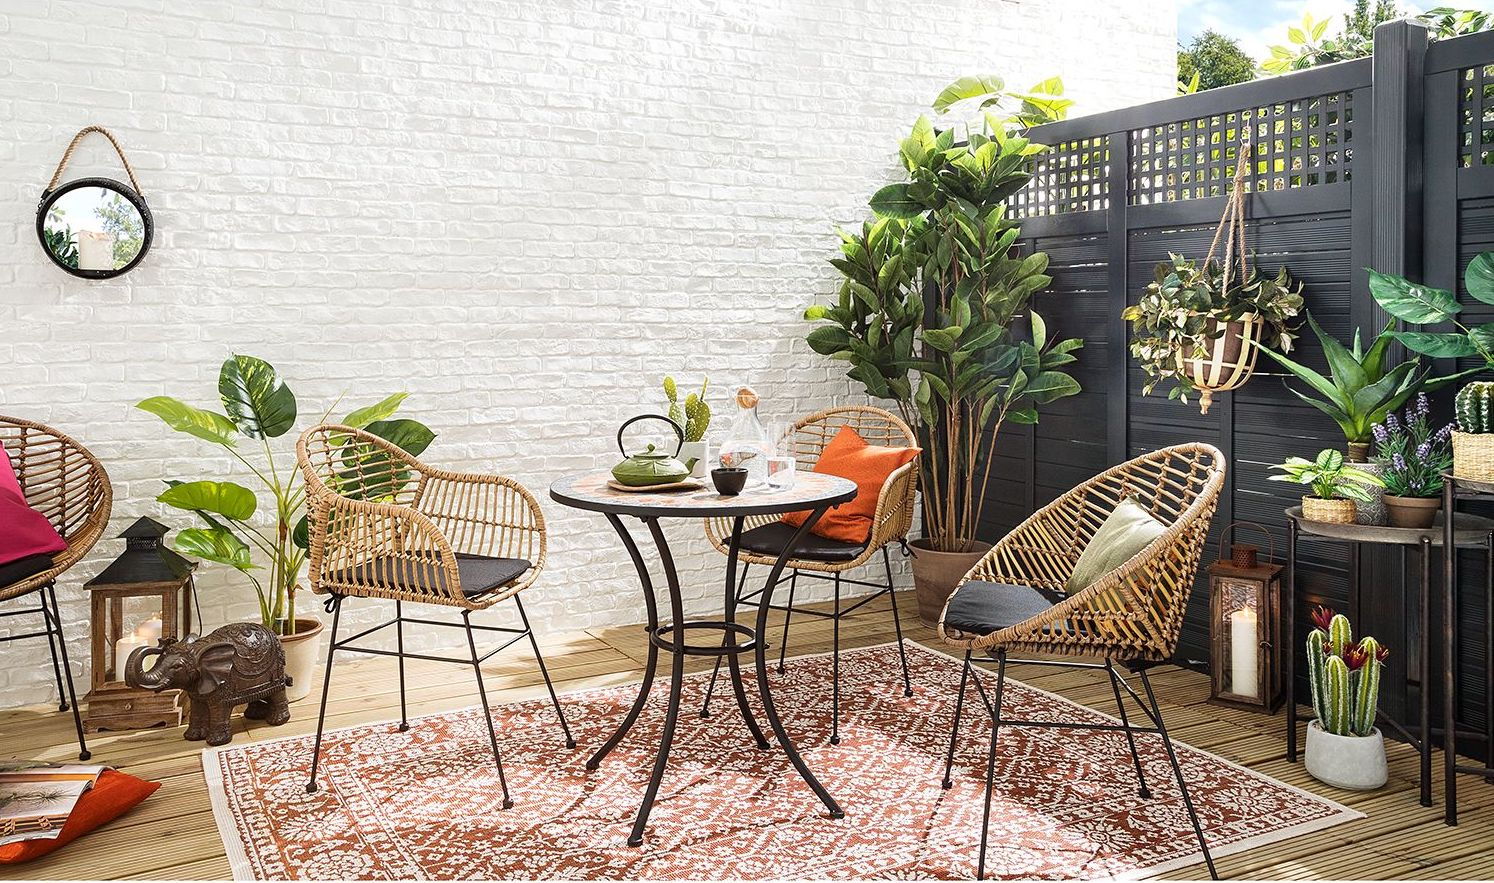 Deco Terrasse Appartement Laterne Boho Style Ecosia